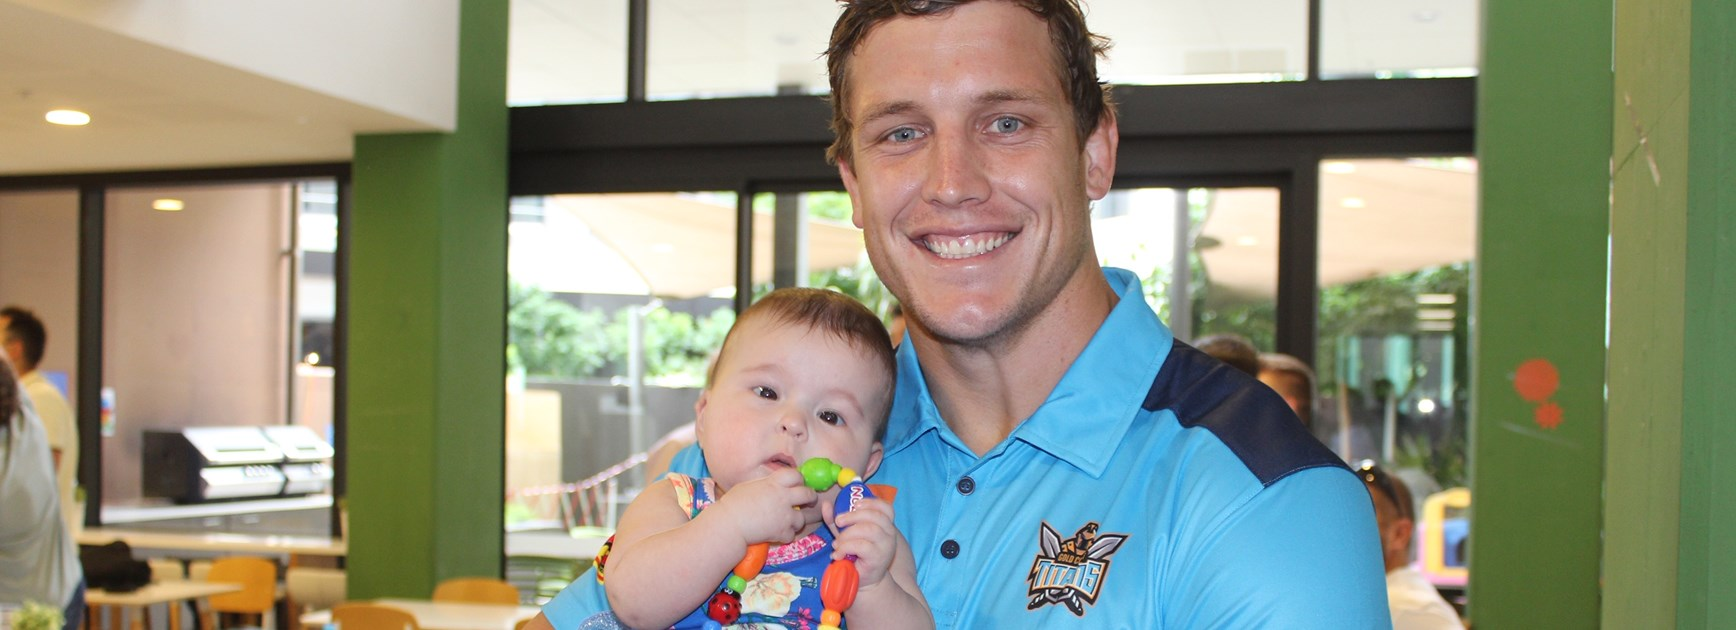 Charity work hits home for tough Titan